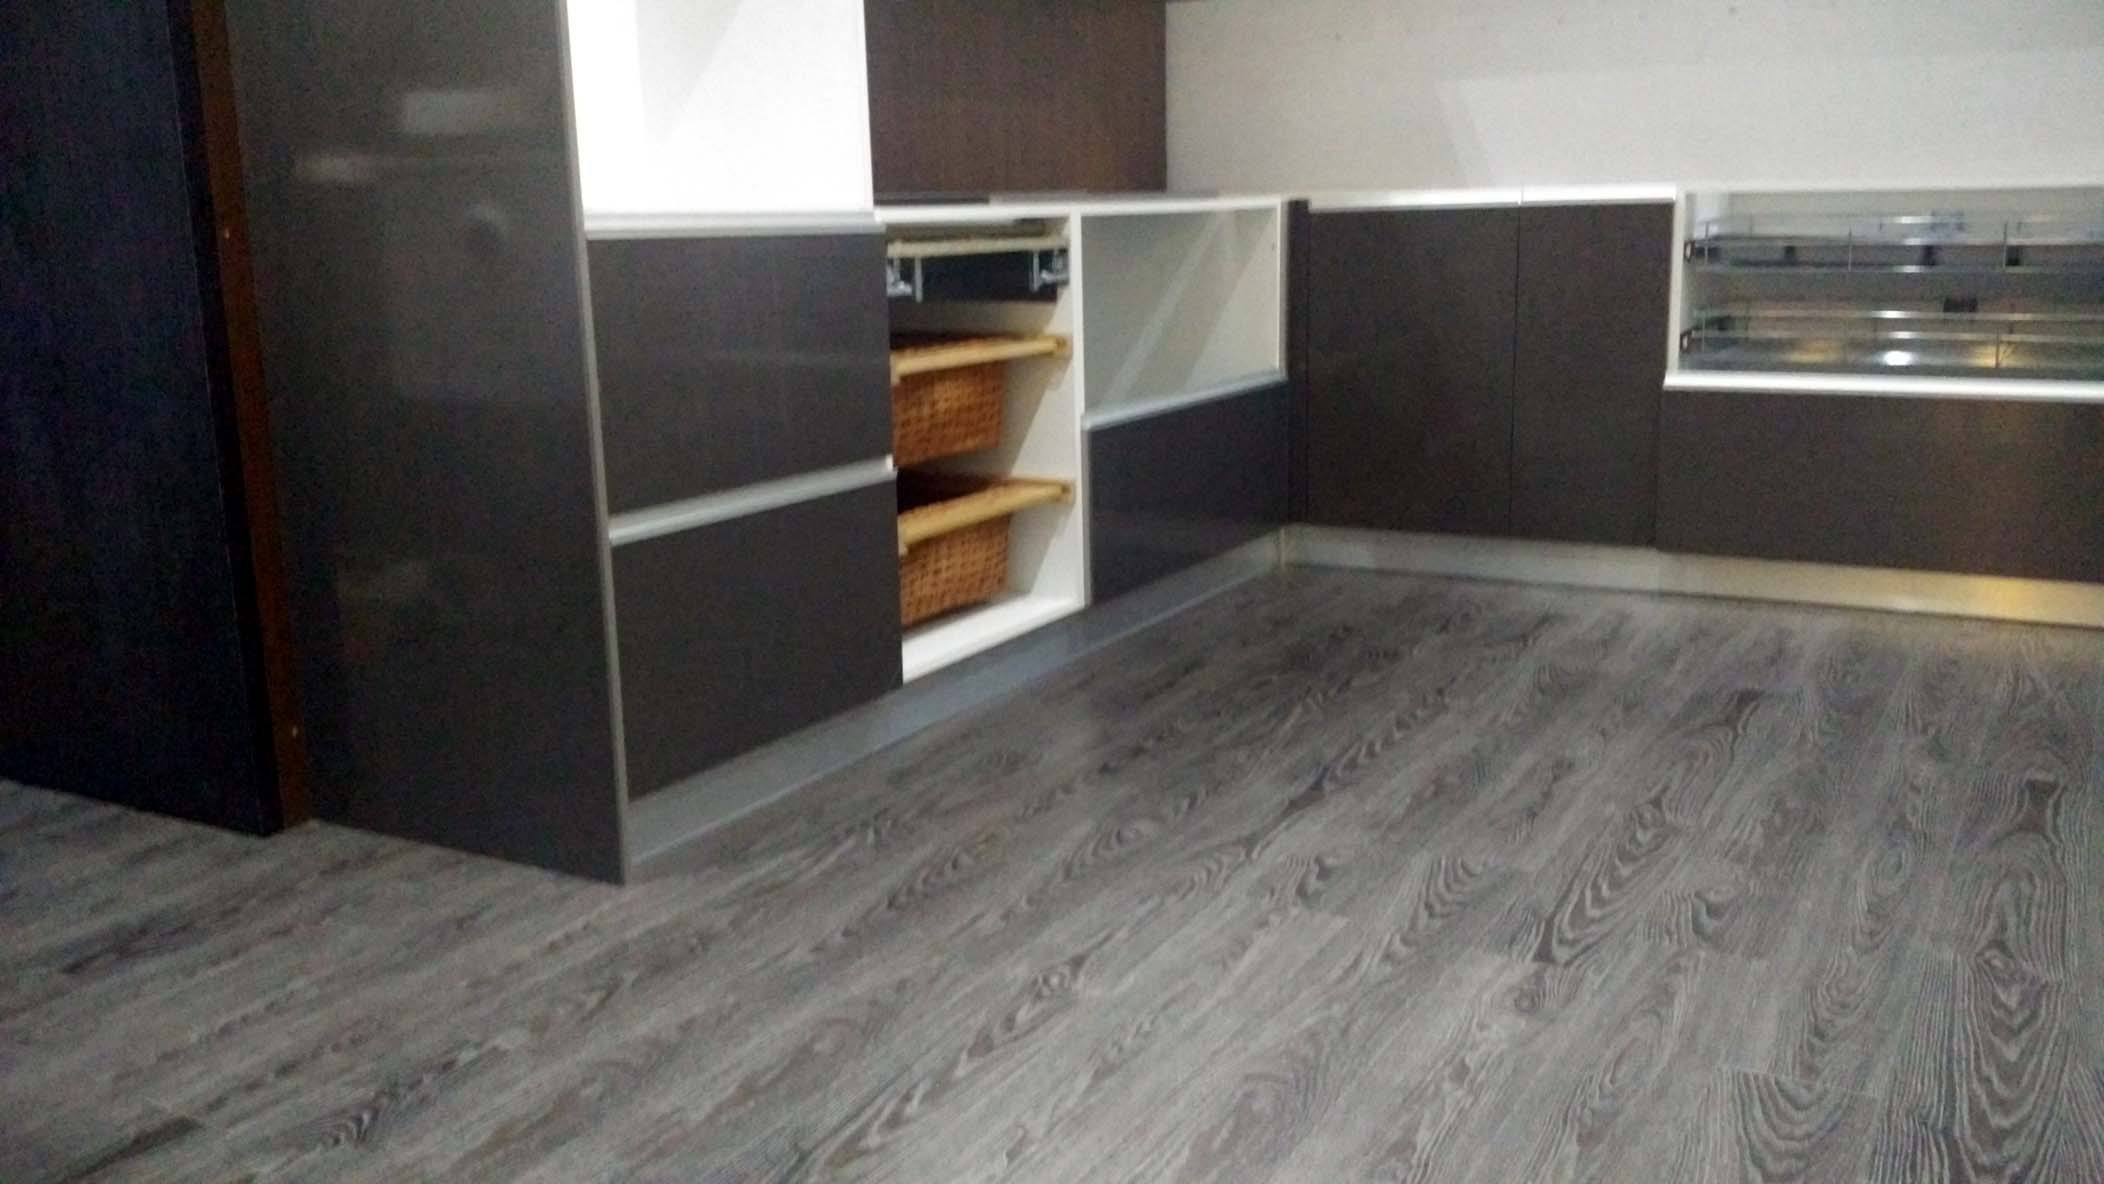 Ibis Flooring Are Also An Environmentally Responsible Laminated Wood Option We Reble Manufacturers